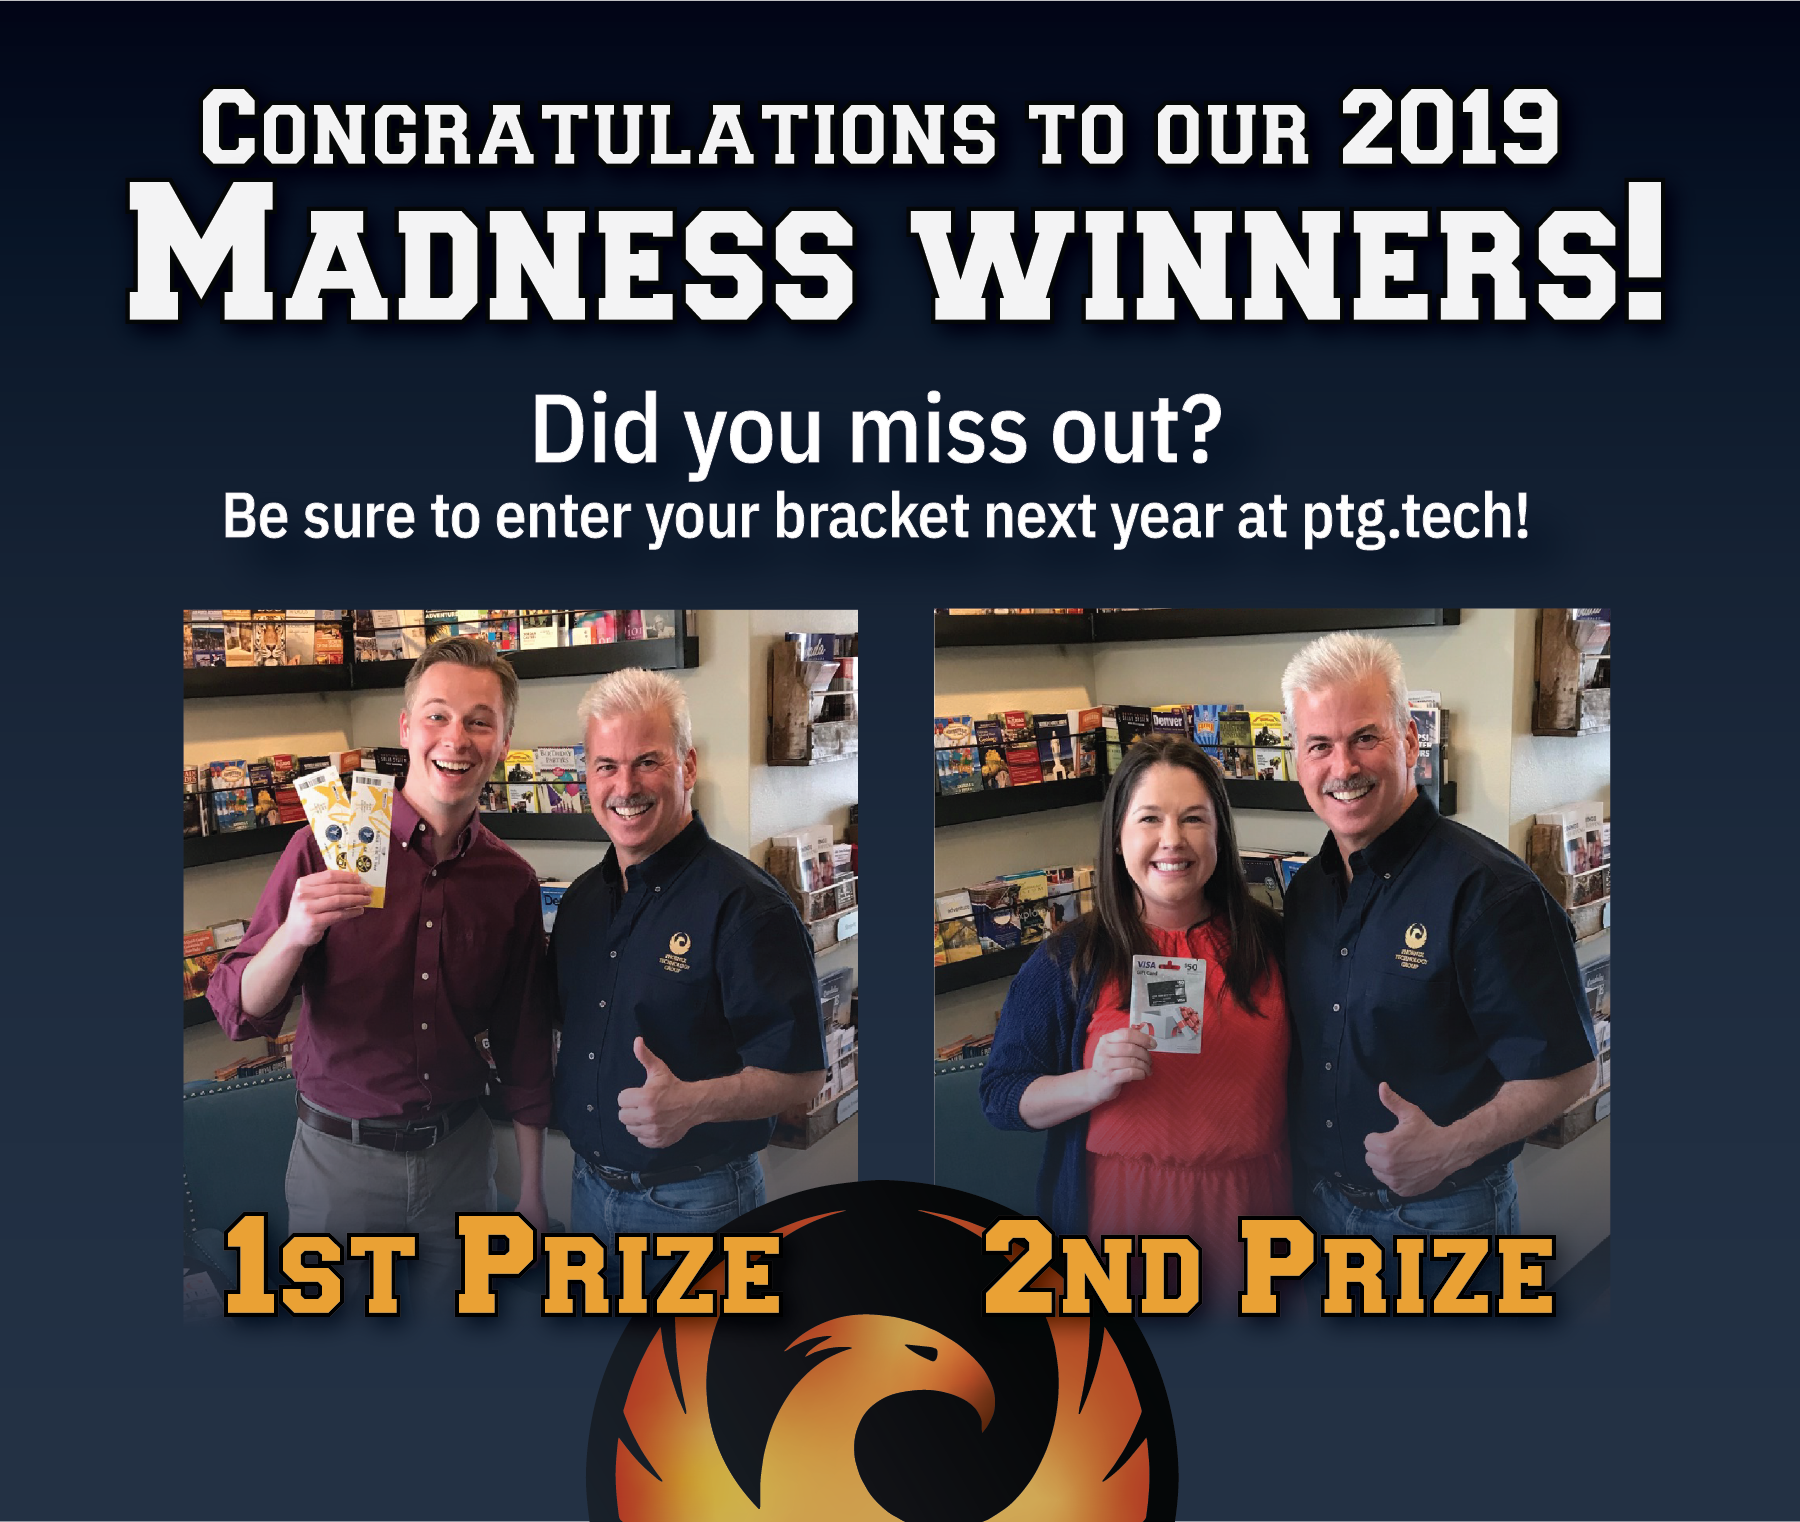 Our main man Mike Fisher delivered some great Nuggets tickets and a couple of $50 gift cards to the two people that predicted their NCAA brackets most accurately! If you missed your chance this year, check back next spring to submit yours for a chance to win some cool stuff!